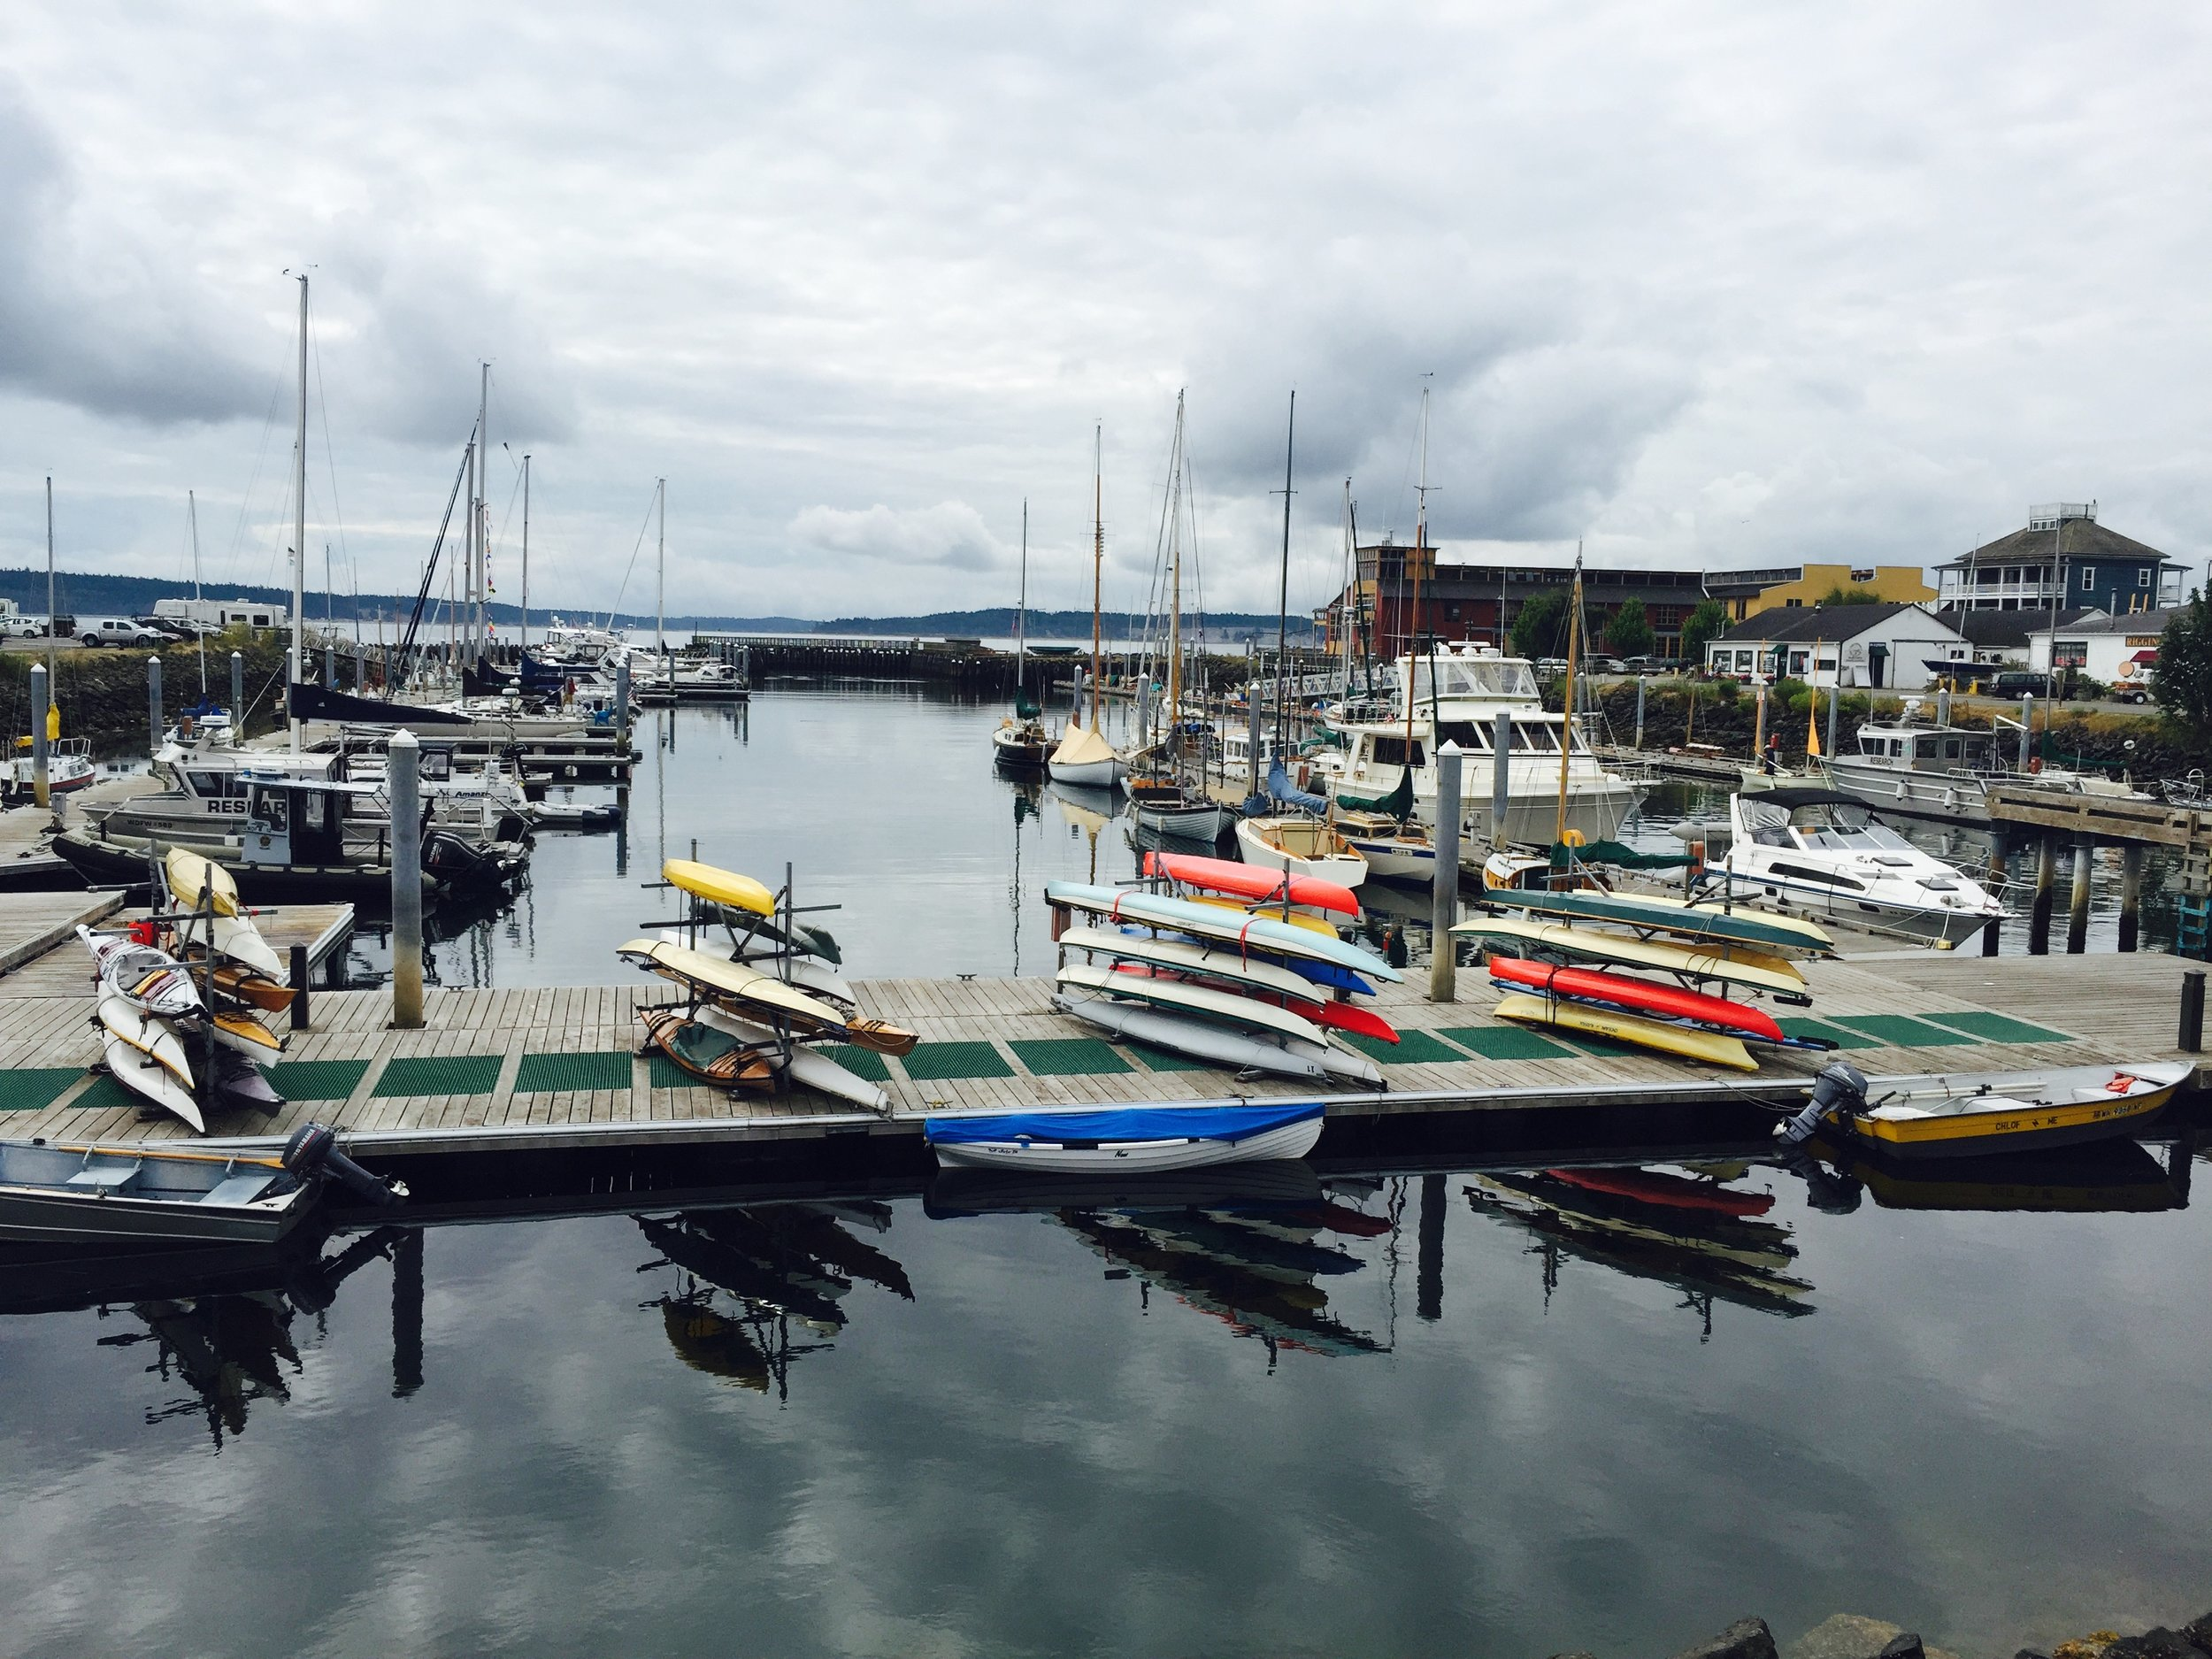 road trip to Port Townsend, WA